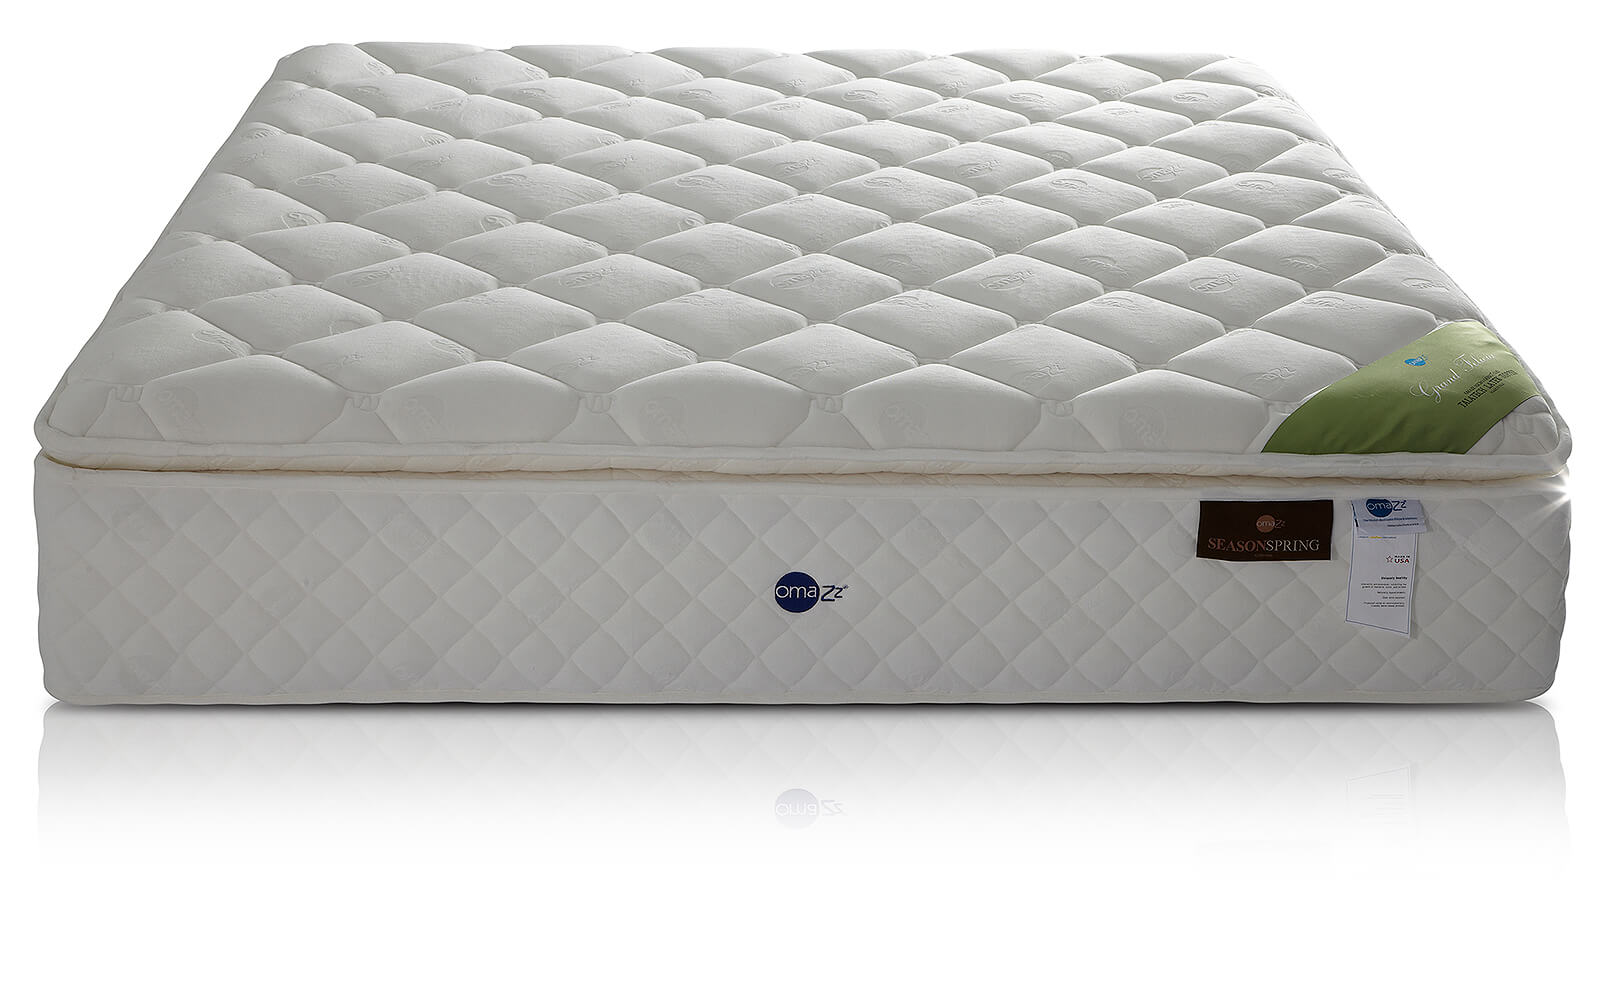 omazz-mattress-grand-felicia-o-4